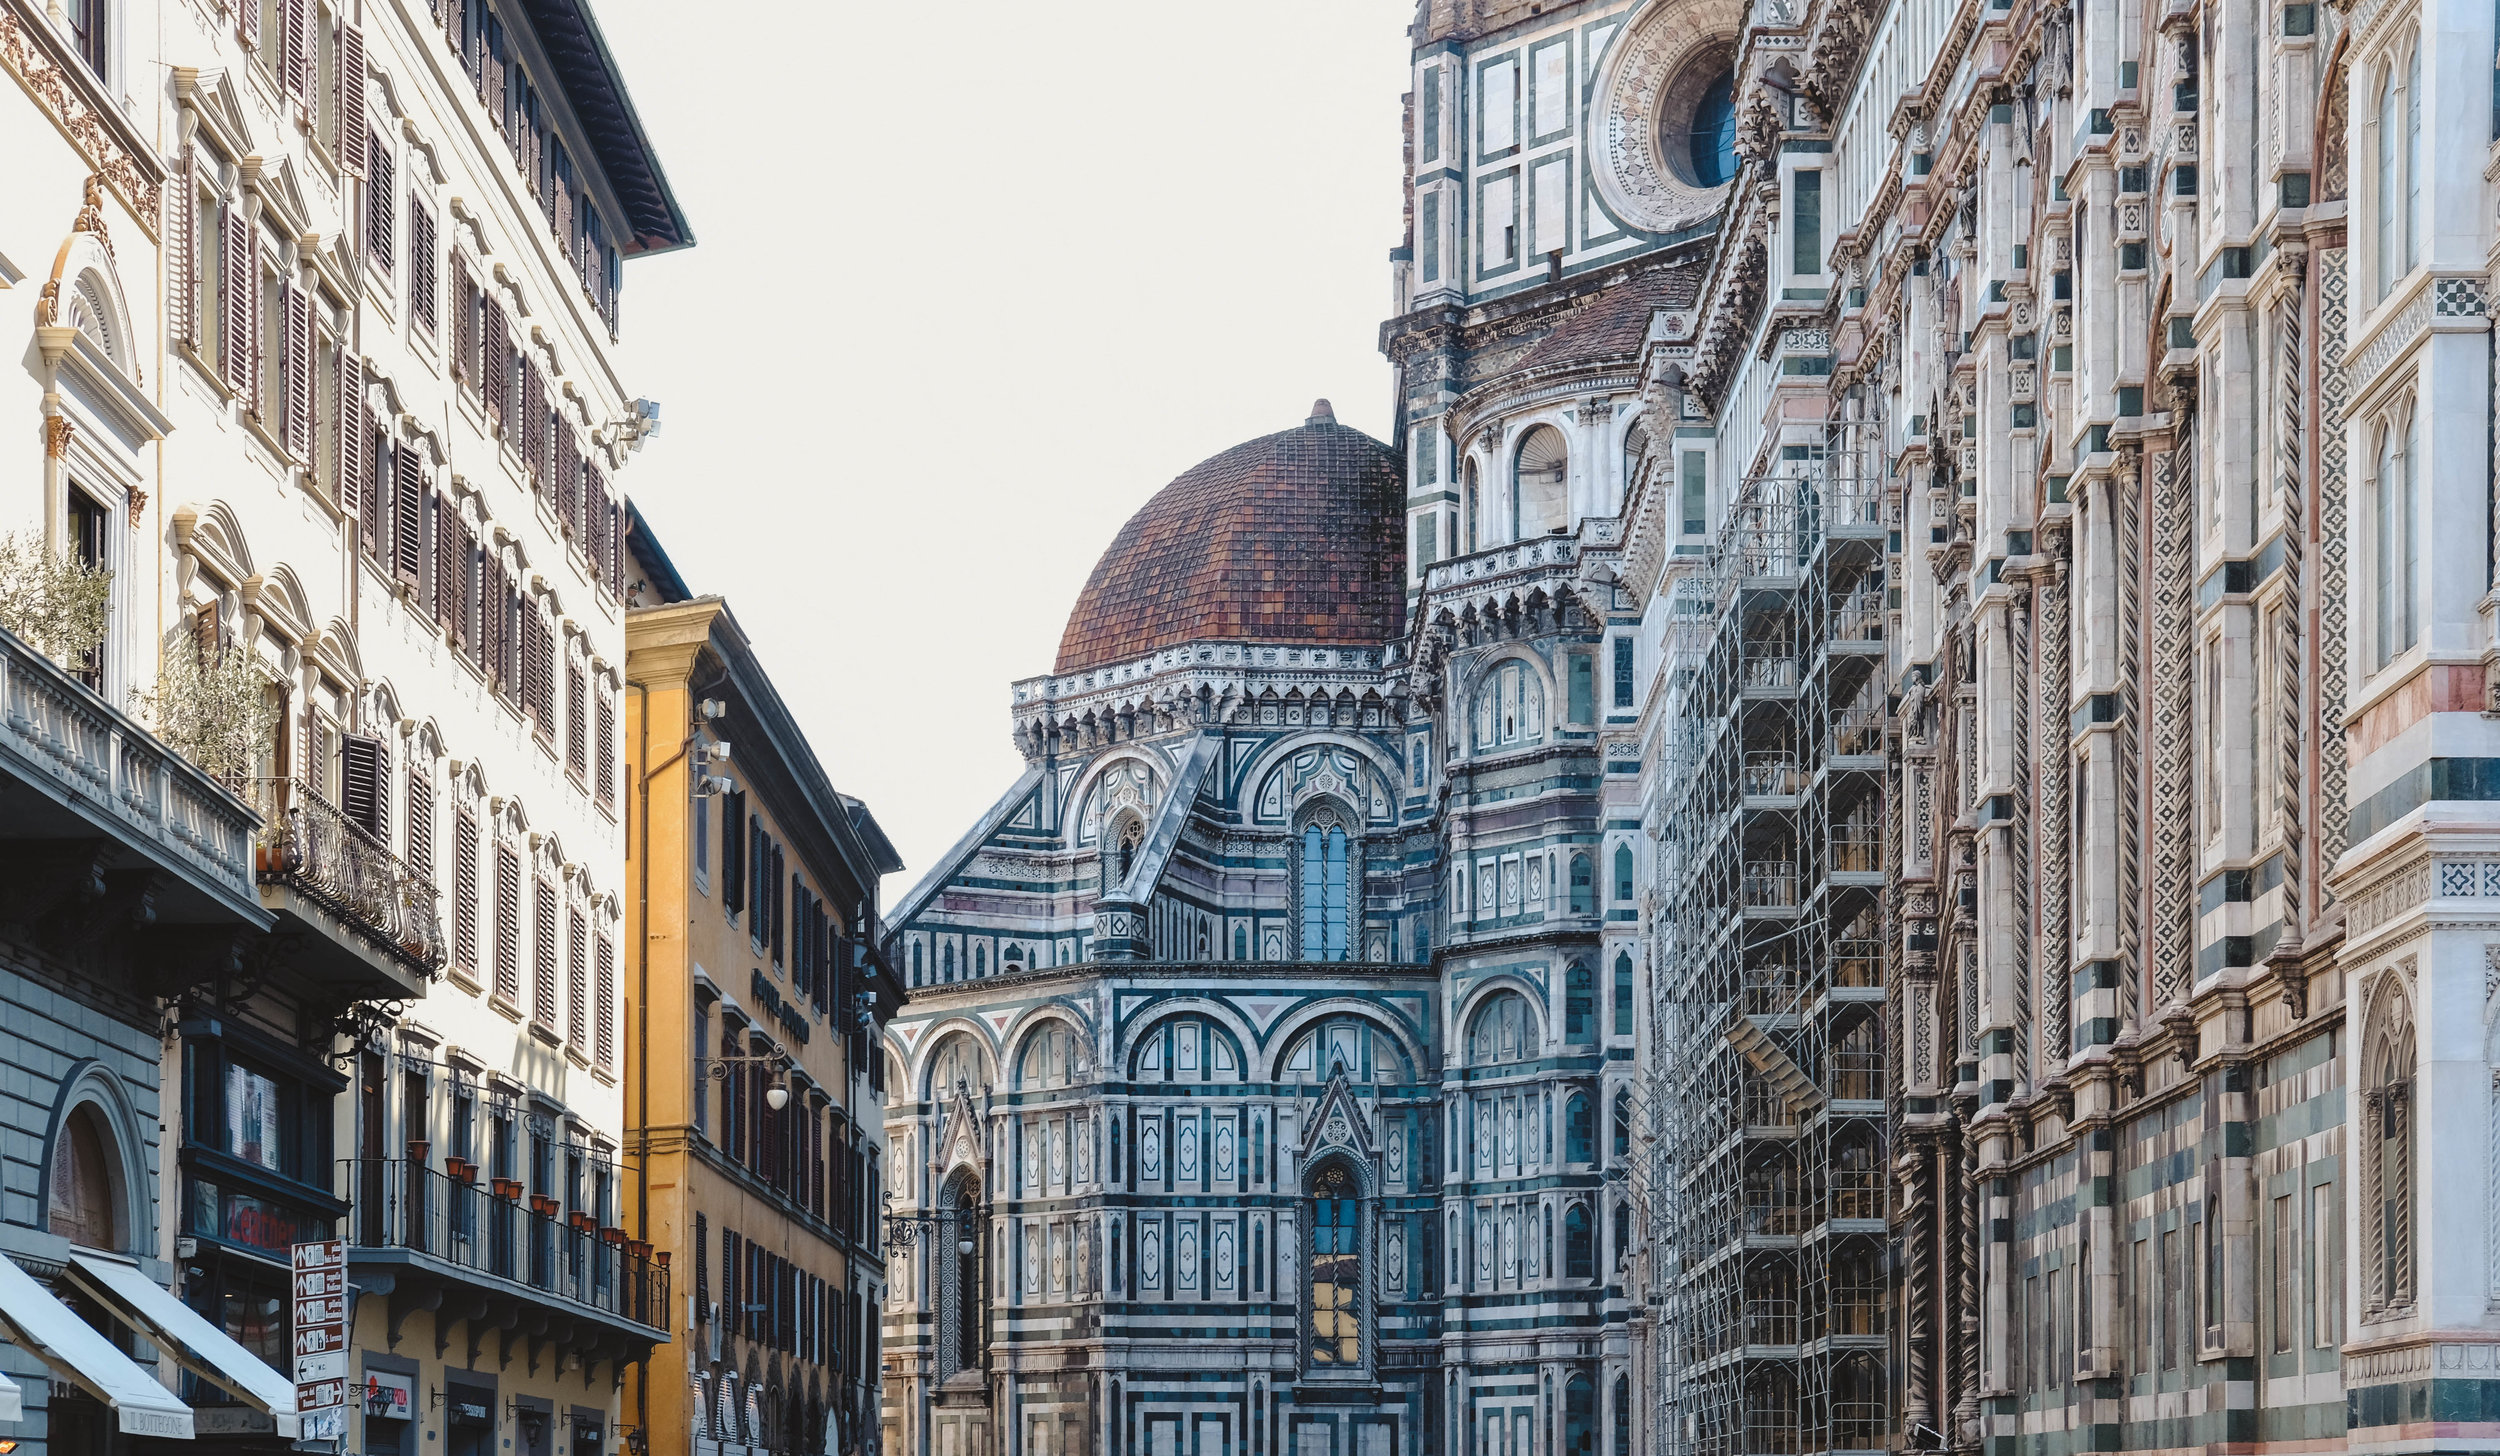 "<p style=""font-family:brandon-grotesque;font-weight:500; font-size:11px; text-center:left; color:light grey;letter-spacing: 1px"">MARCH 26, 2018 • PIAZZA DEL DUOMO • �Florence, Italy 🇮🇹</p>"